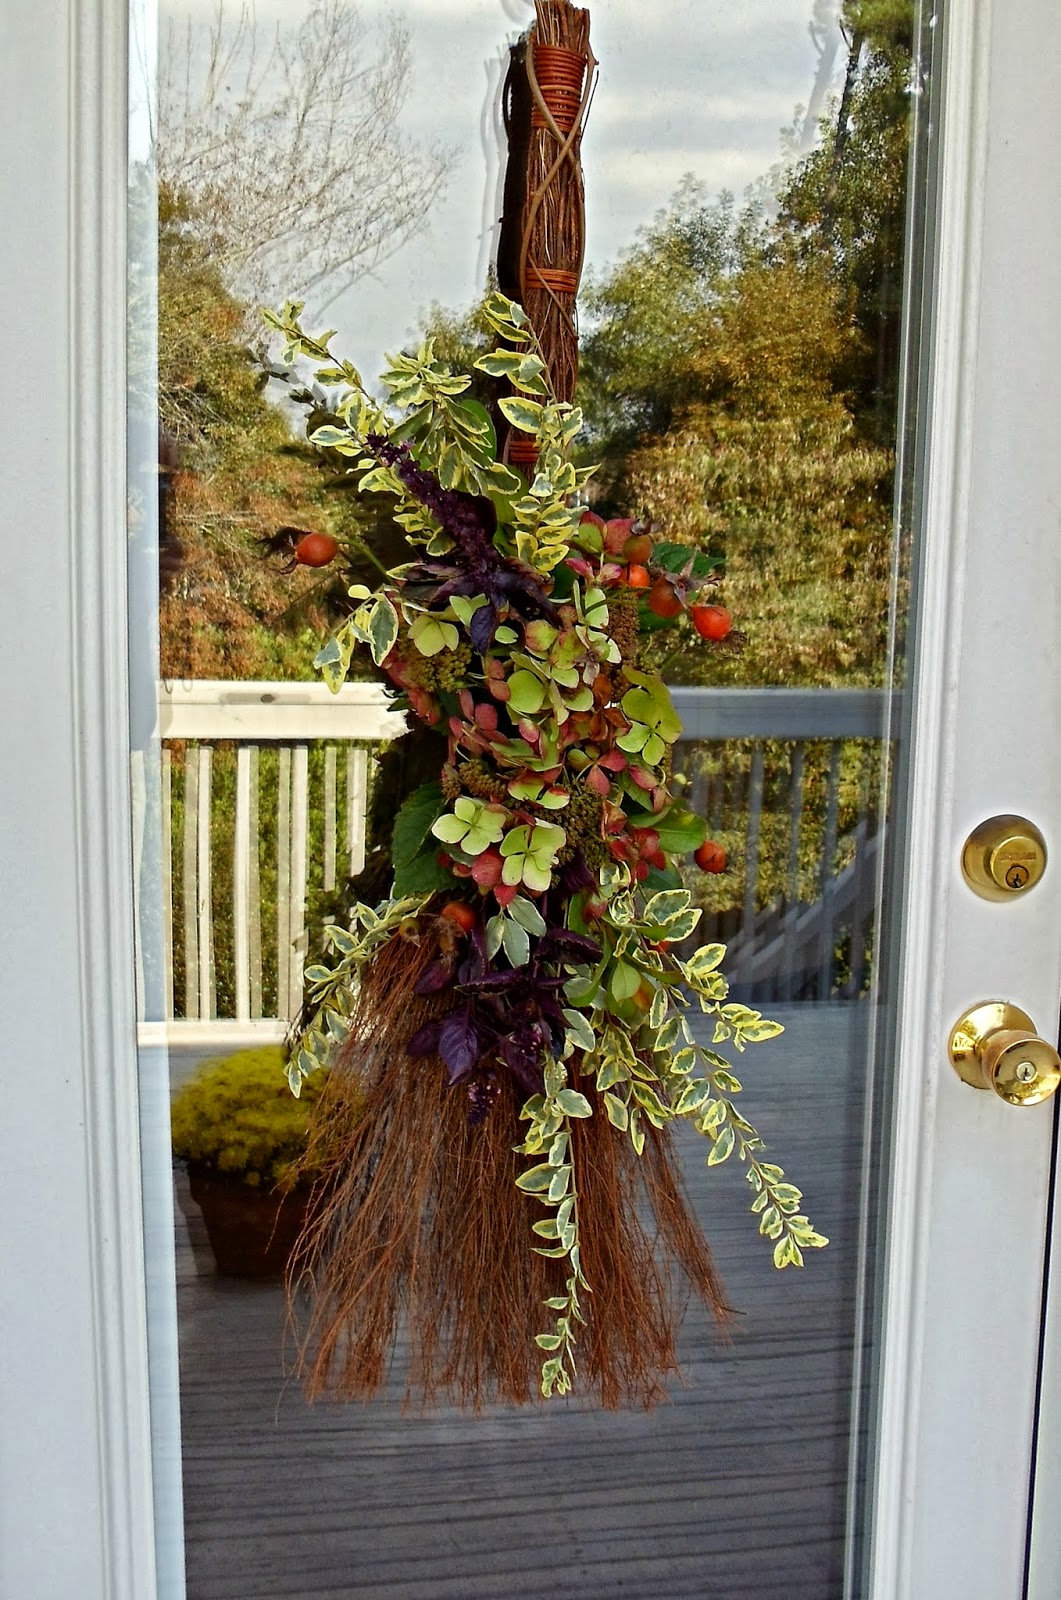 Upstairs Downstairs: How to Make an Early Fall Door Decoration